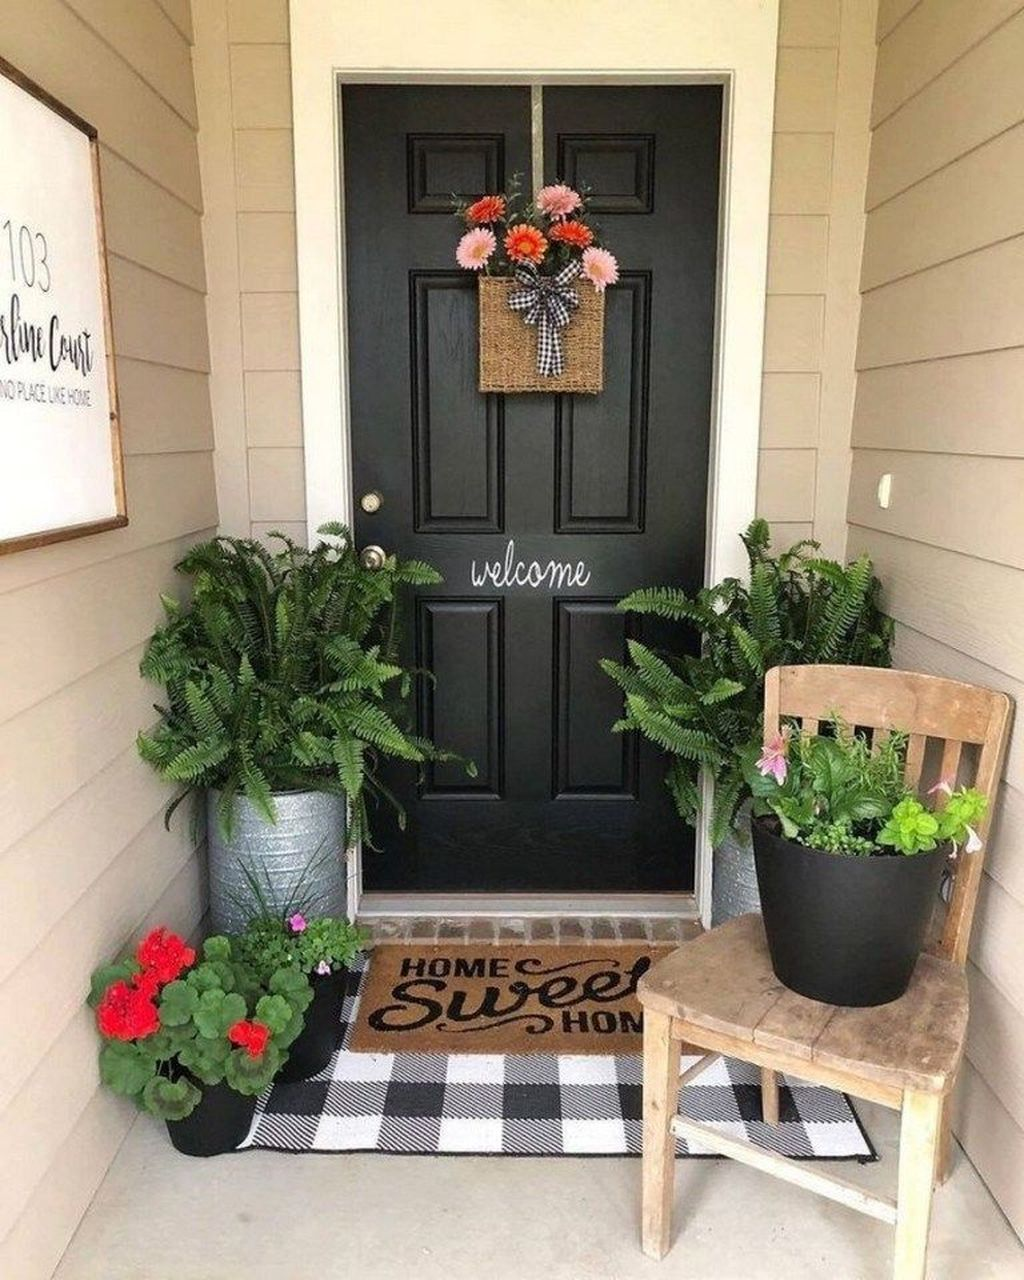 The Best Front Porch Ideas For Summer Decorating 24